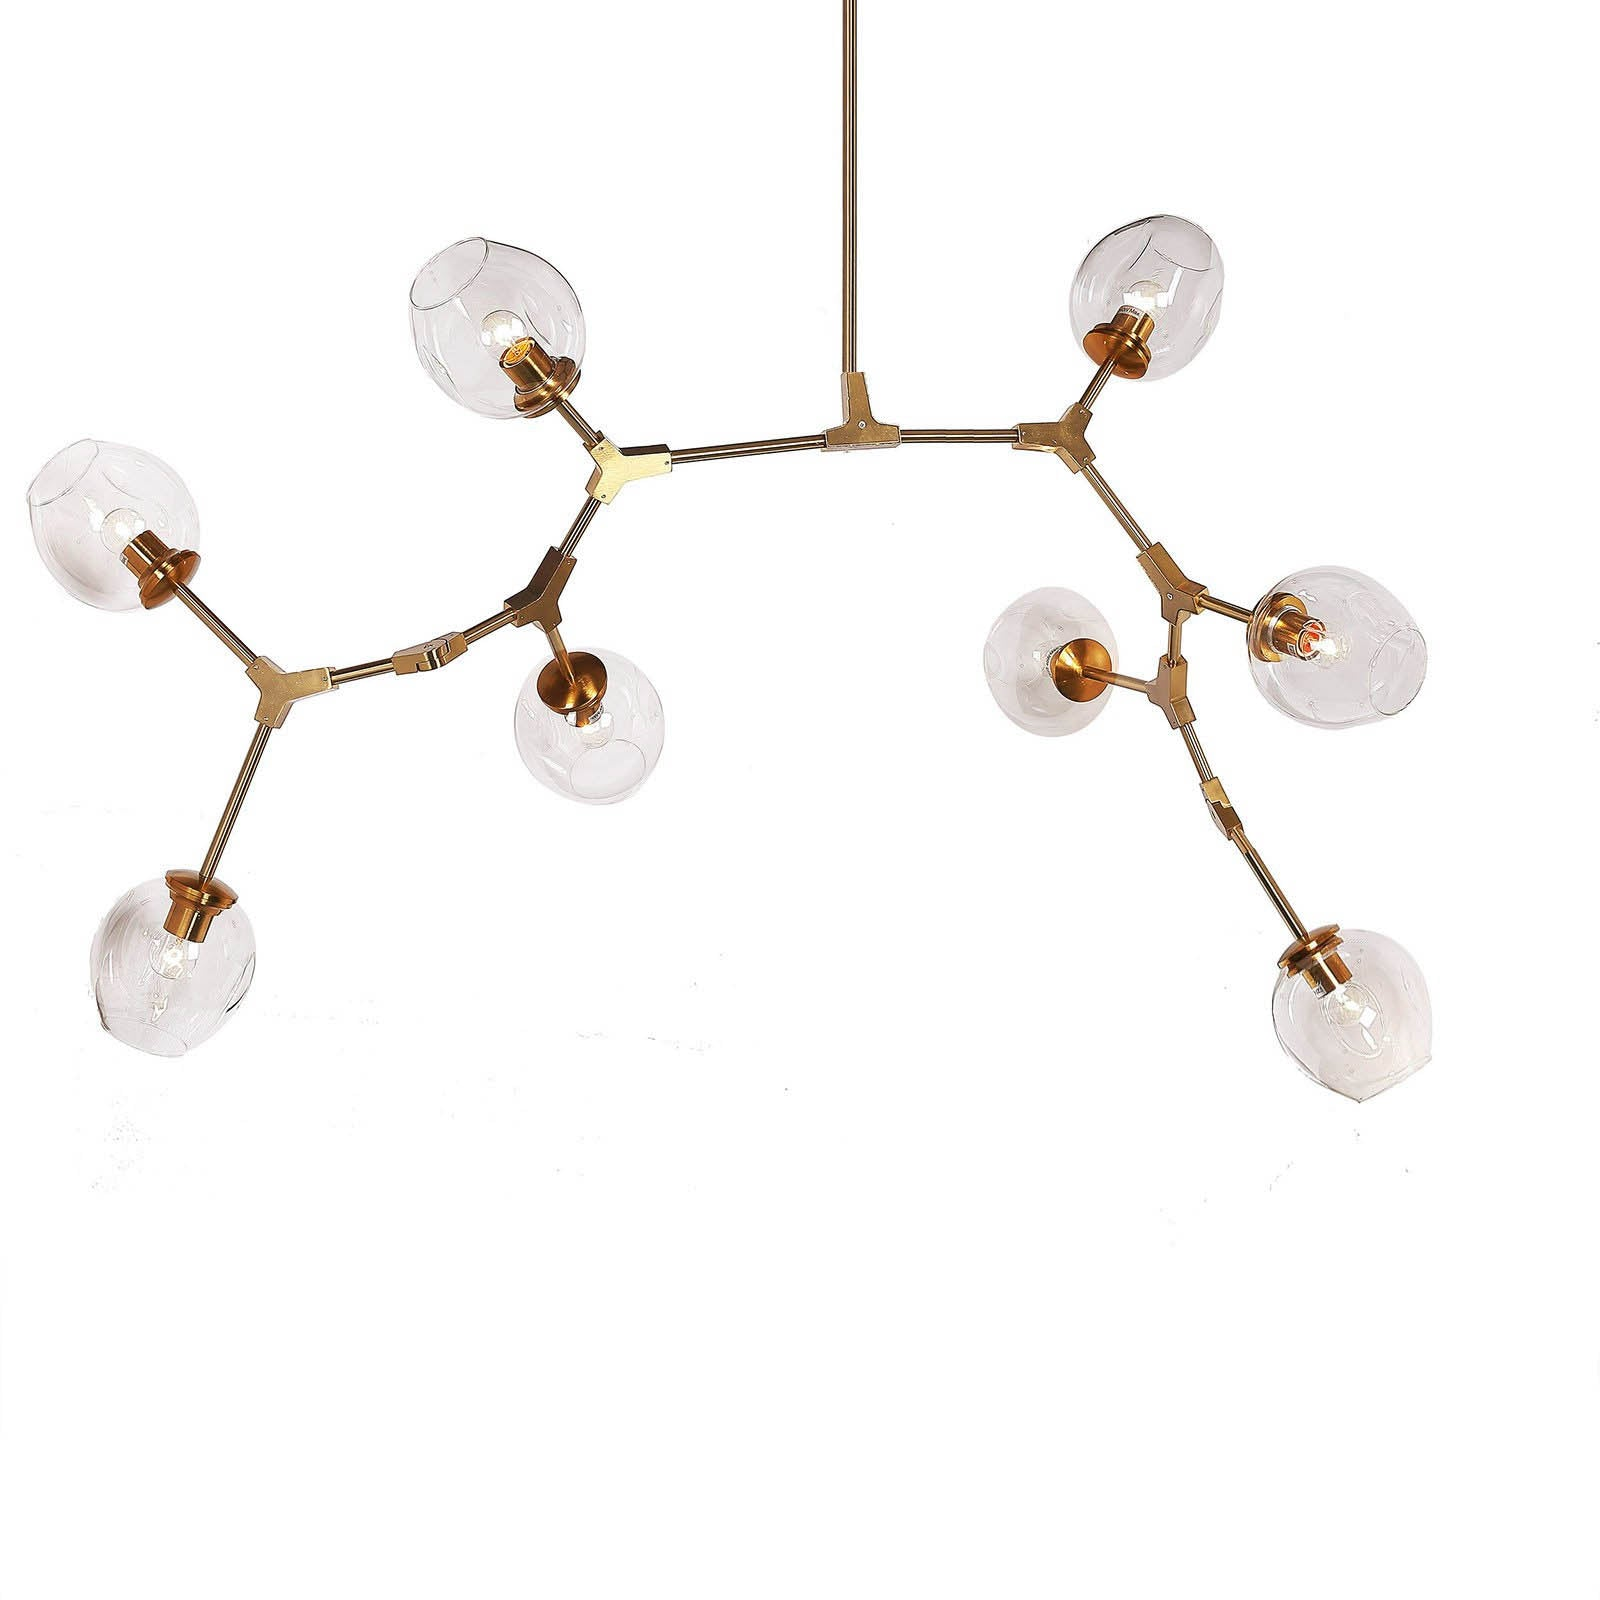 Branch 8 bubble Chandelier  ZY-3136-9-G  CY-DD-275-8-G -  ثريا ذو 8 مصابيح على شكل فقاعات - Shop Online Furniture and Home Decor Store in Dubai, UAE at ebarza